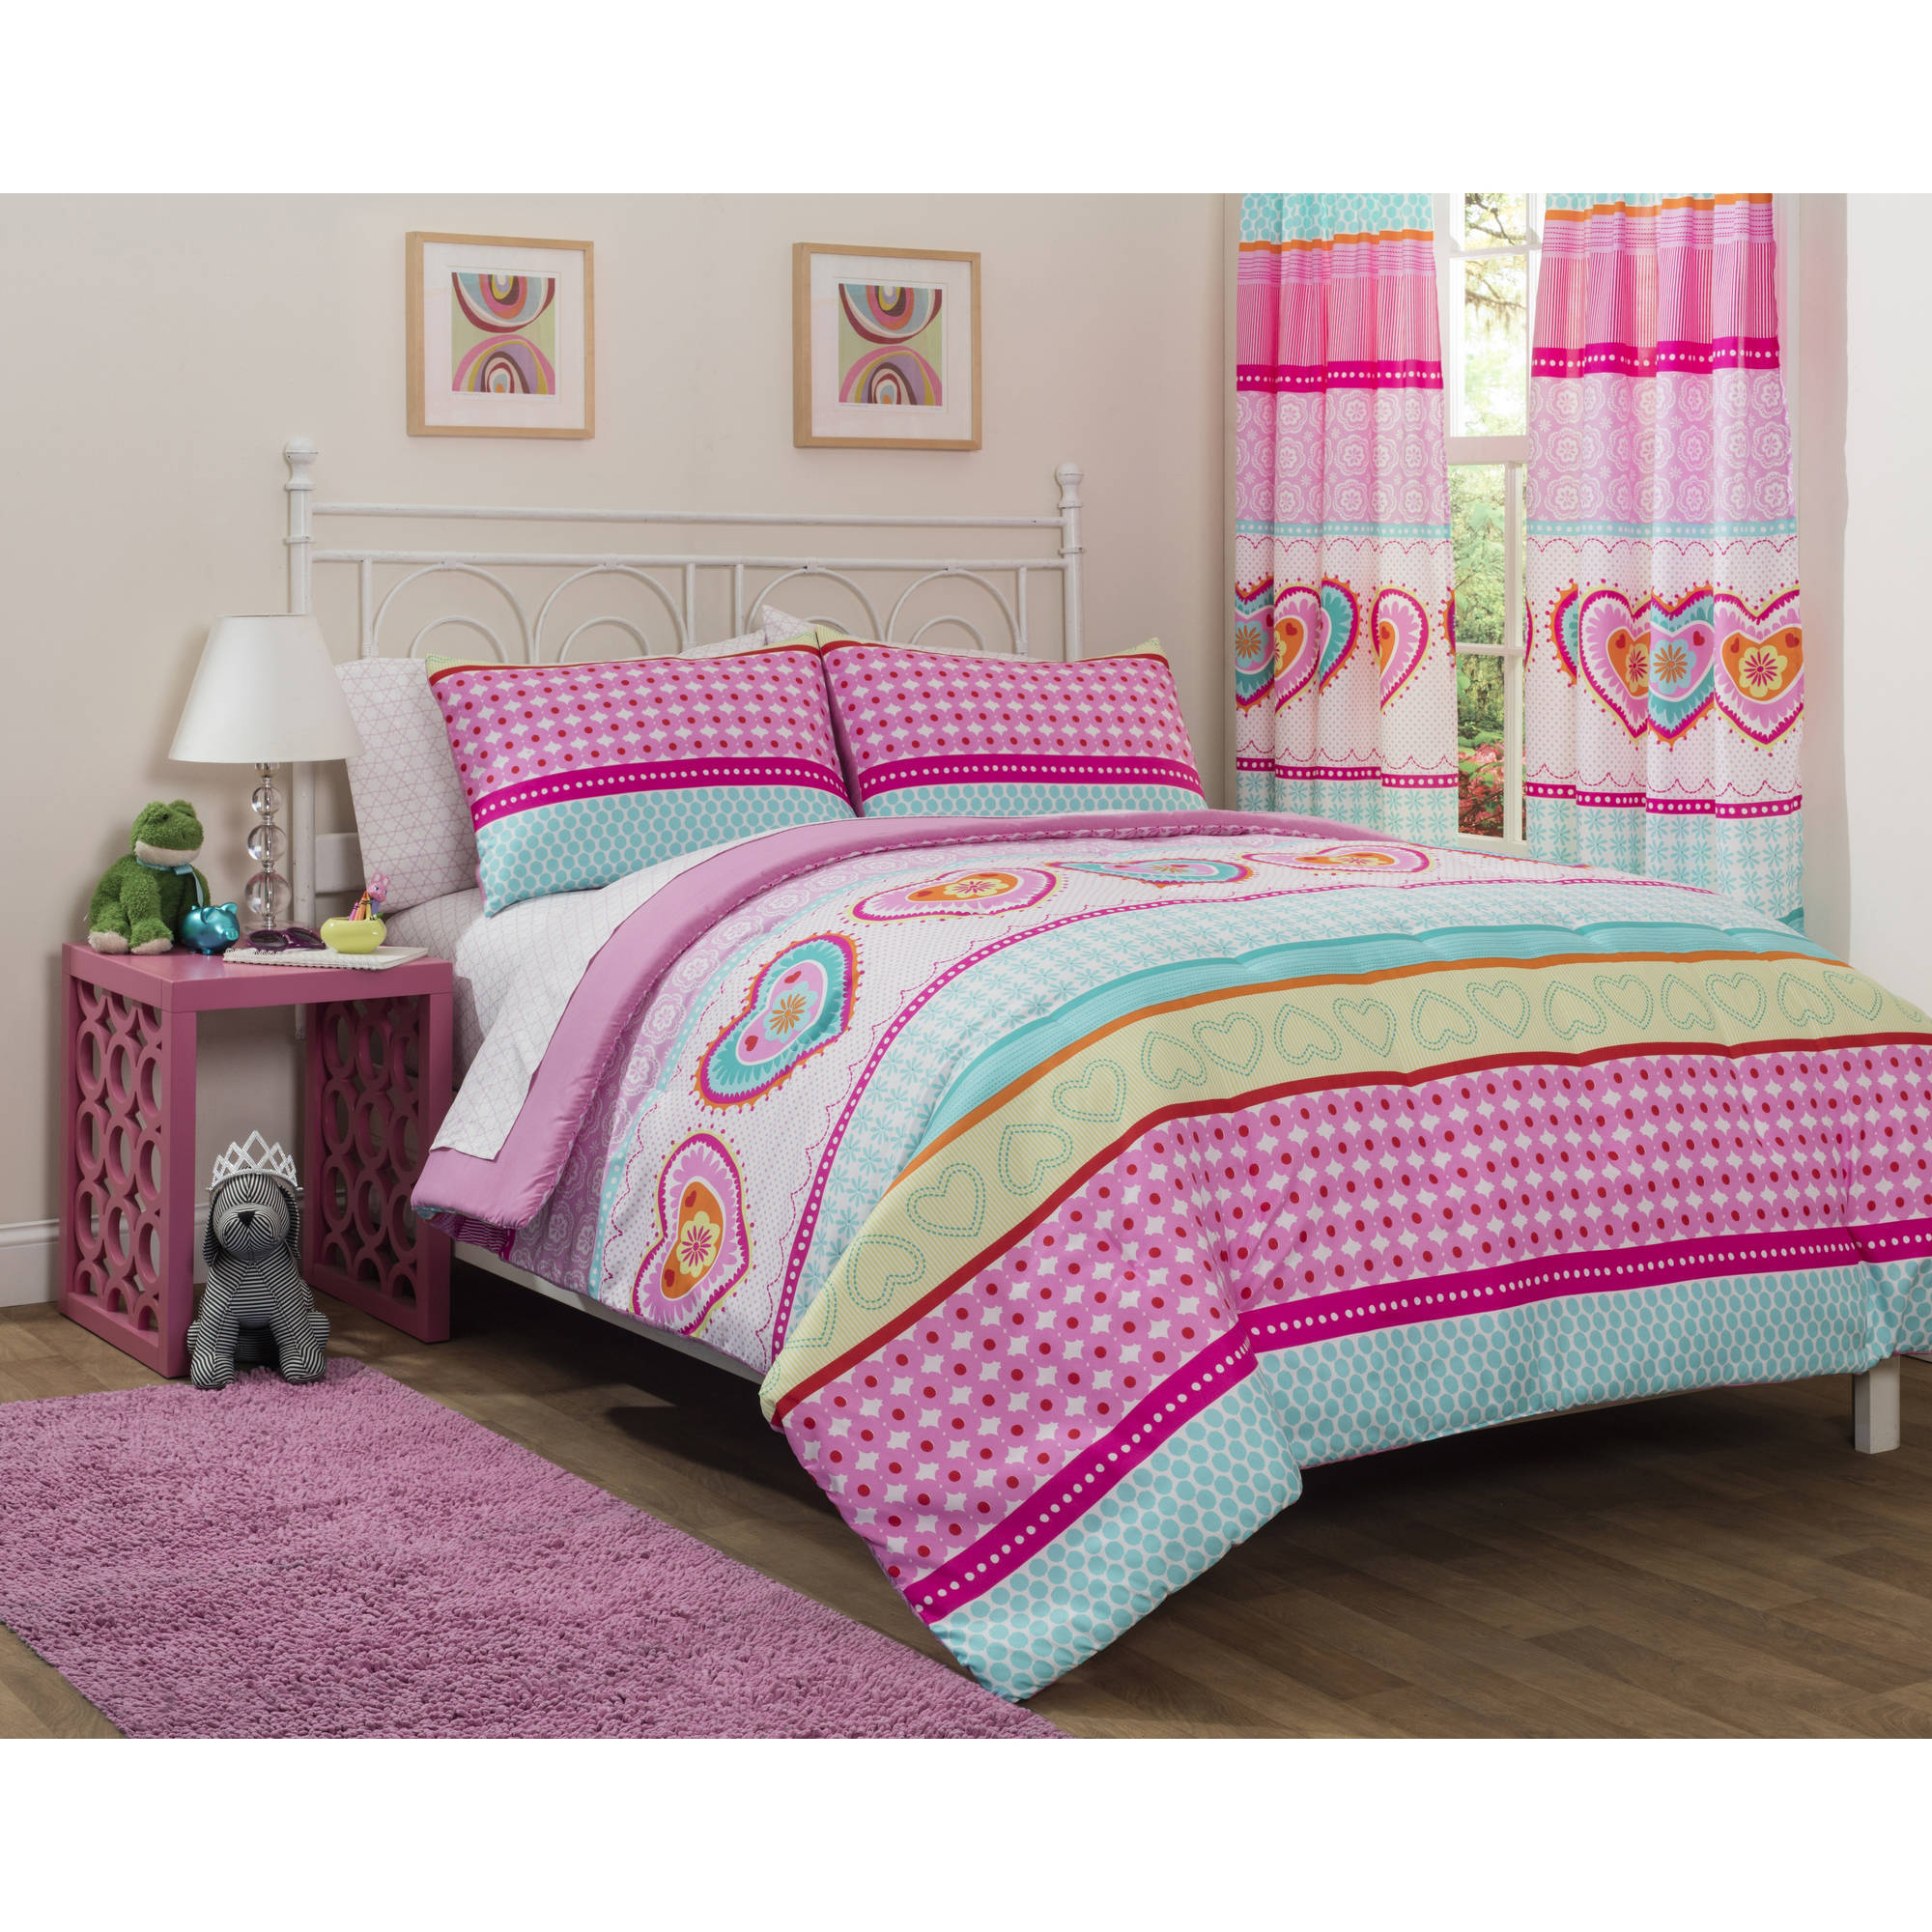 Mainstays Kids Hearts and Stripes Patchwork Bed-in-a-Bag Bedding Set